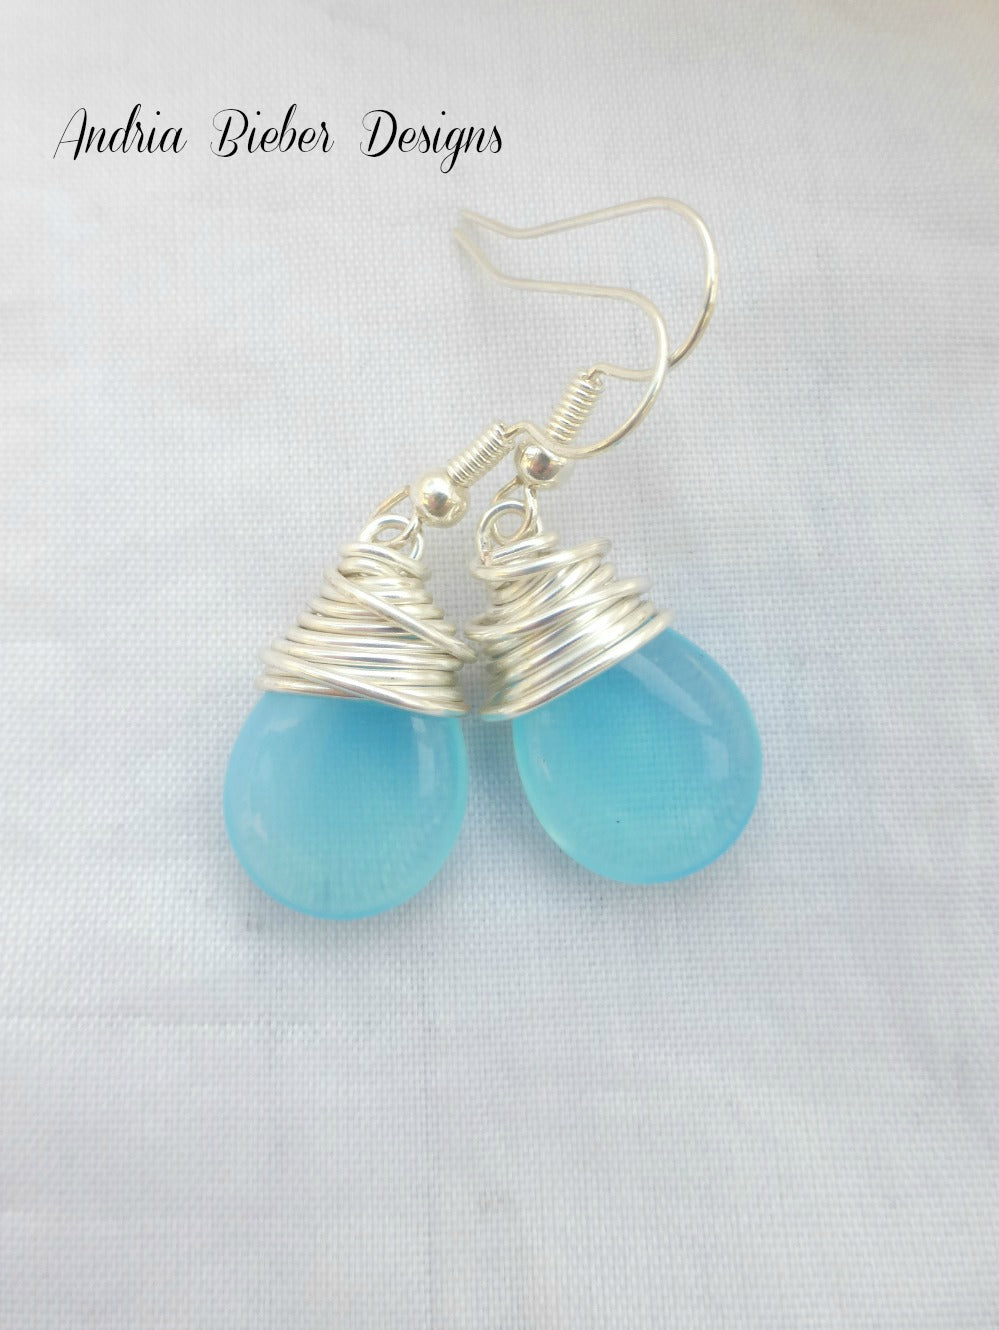 Sky blue transparent teardrop Czech Picasso glass, silver wire wrapping, sterling silver earrings. - Andria Bieber Designs, Earrings - Jewelry,  Andria Bieber Designs  - Andria Bieber Designs